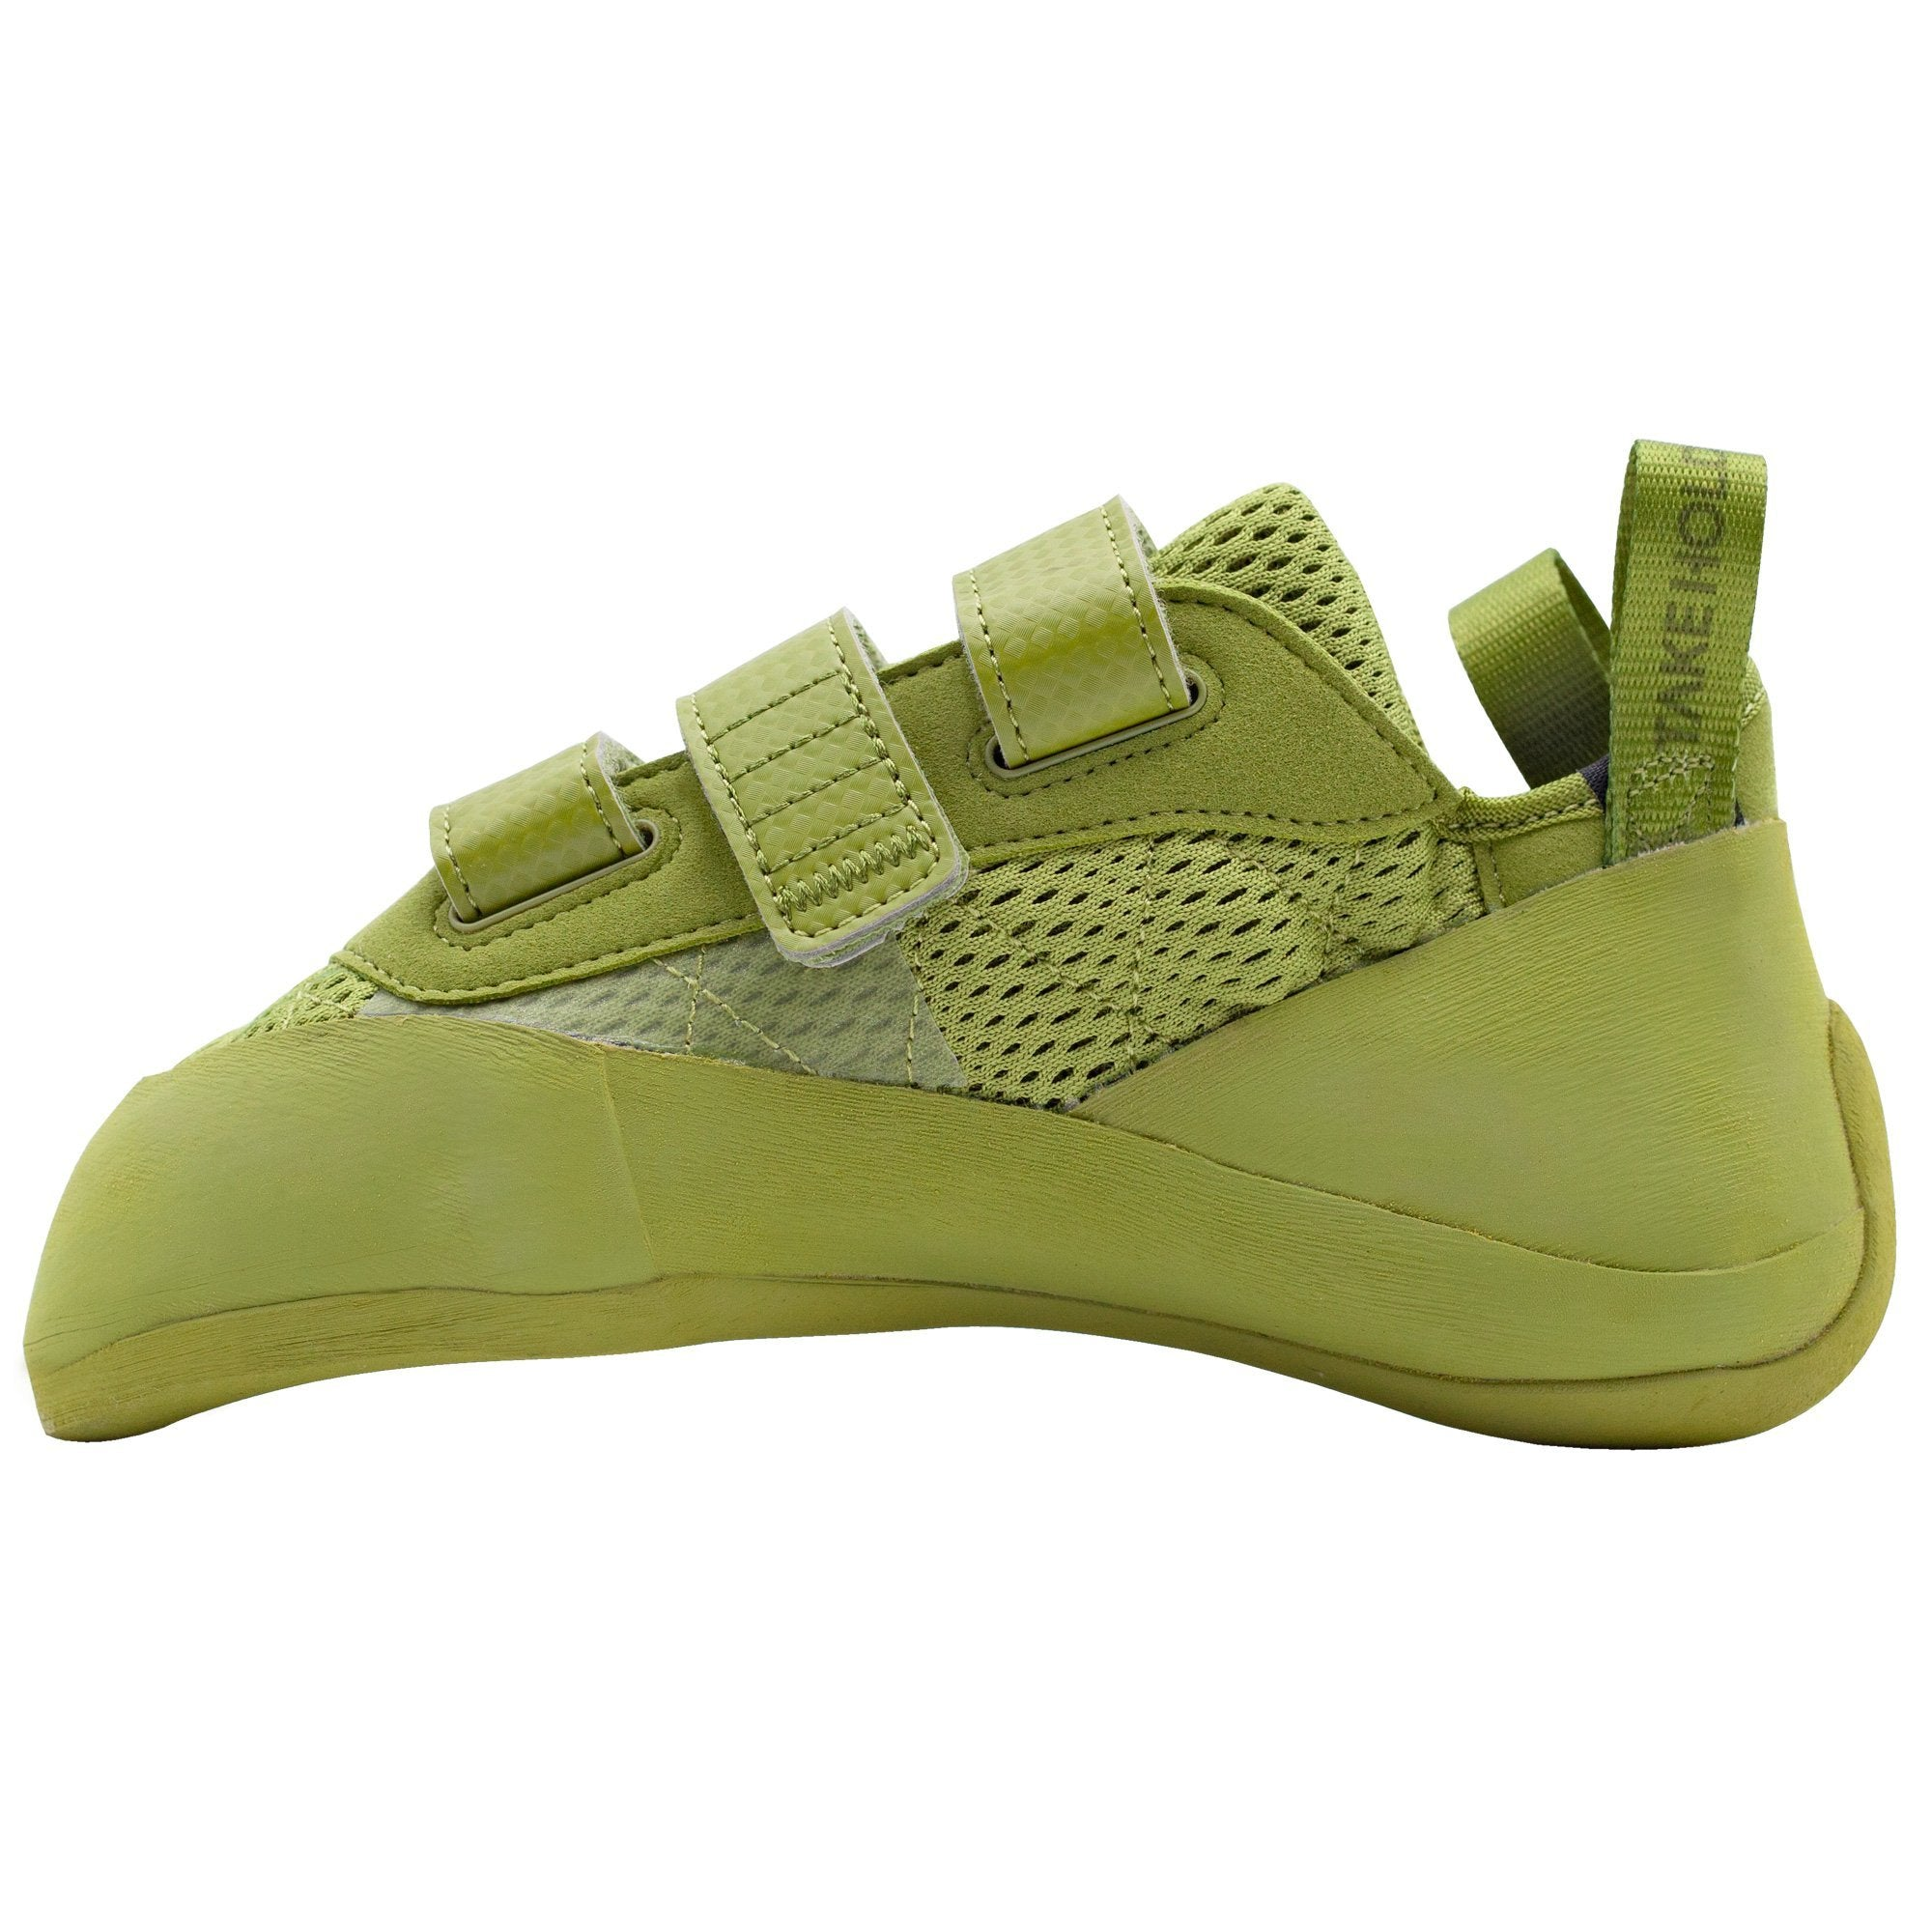 So iLL Runner LV Low Volume Women's Rock Climbing Shoe in Olive – Side View